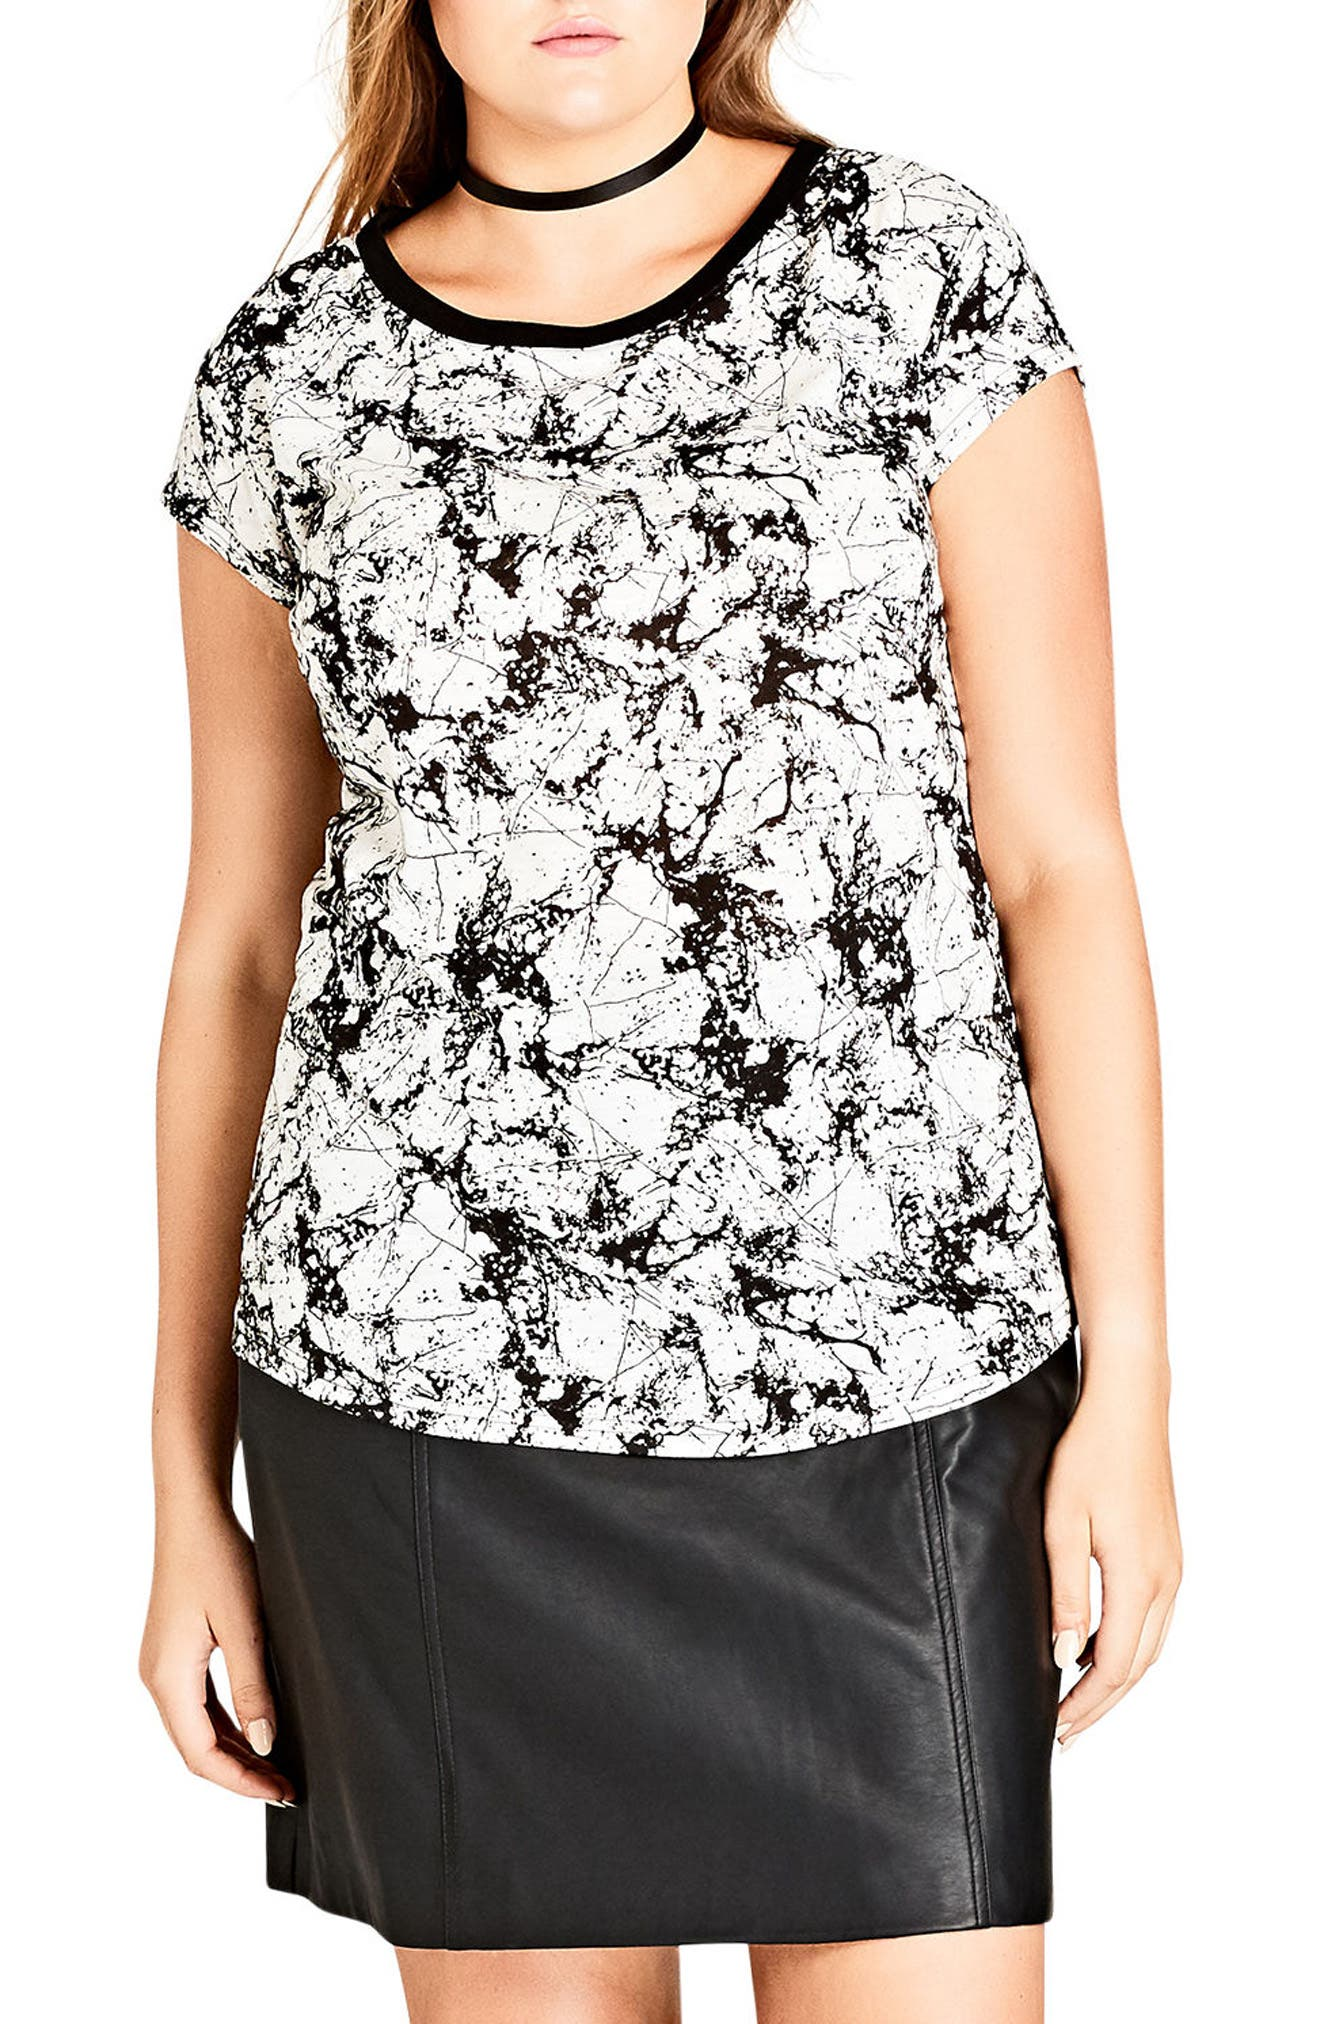 Alternate Image 1 Selected - City Chic Marble Tee (Plus Size)